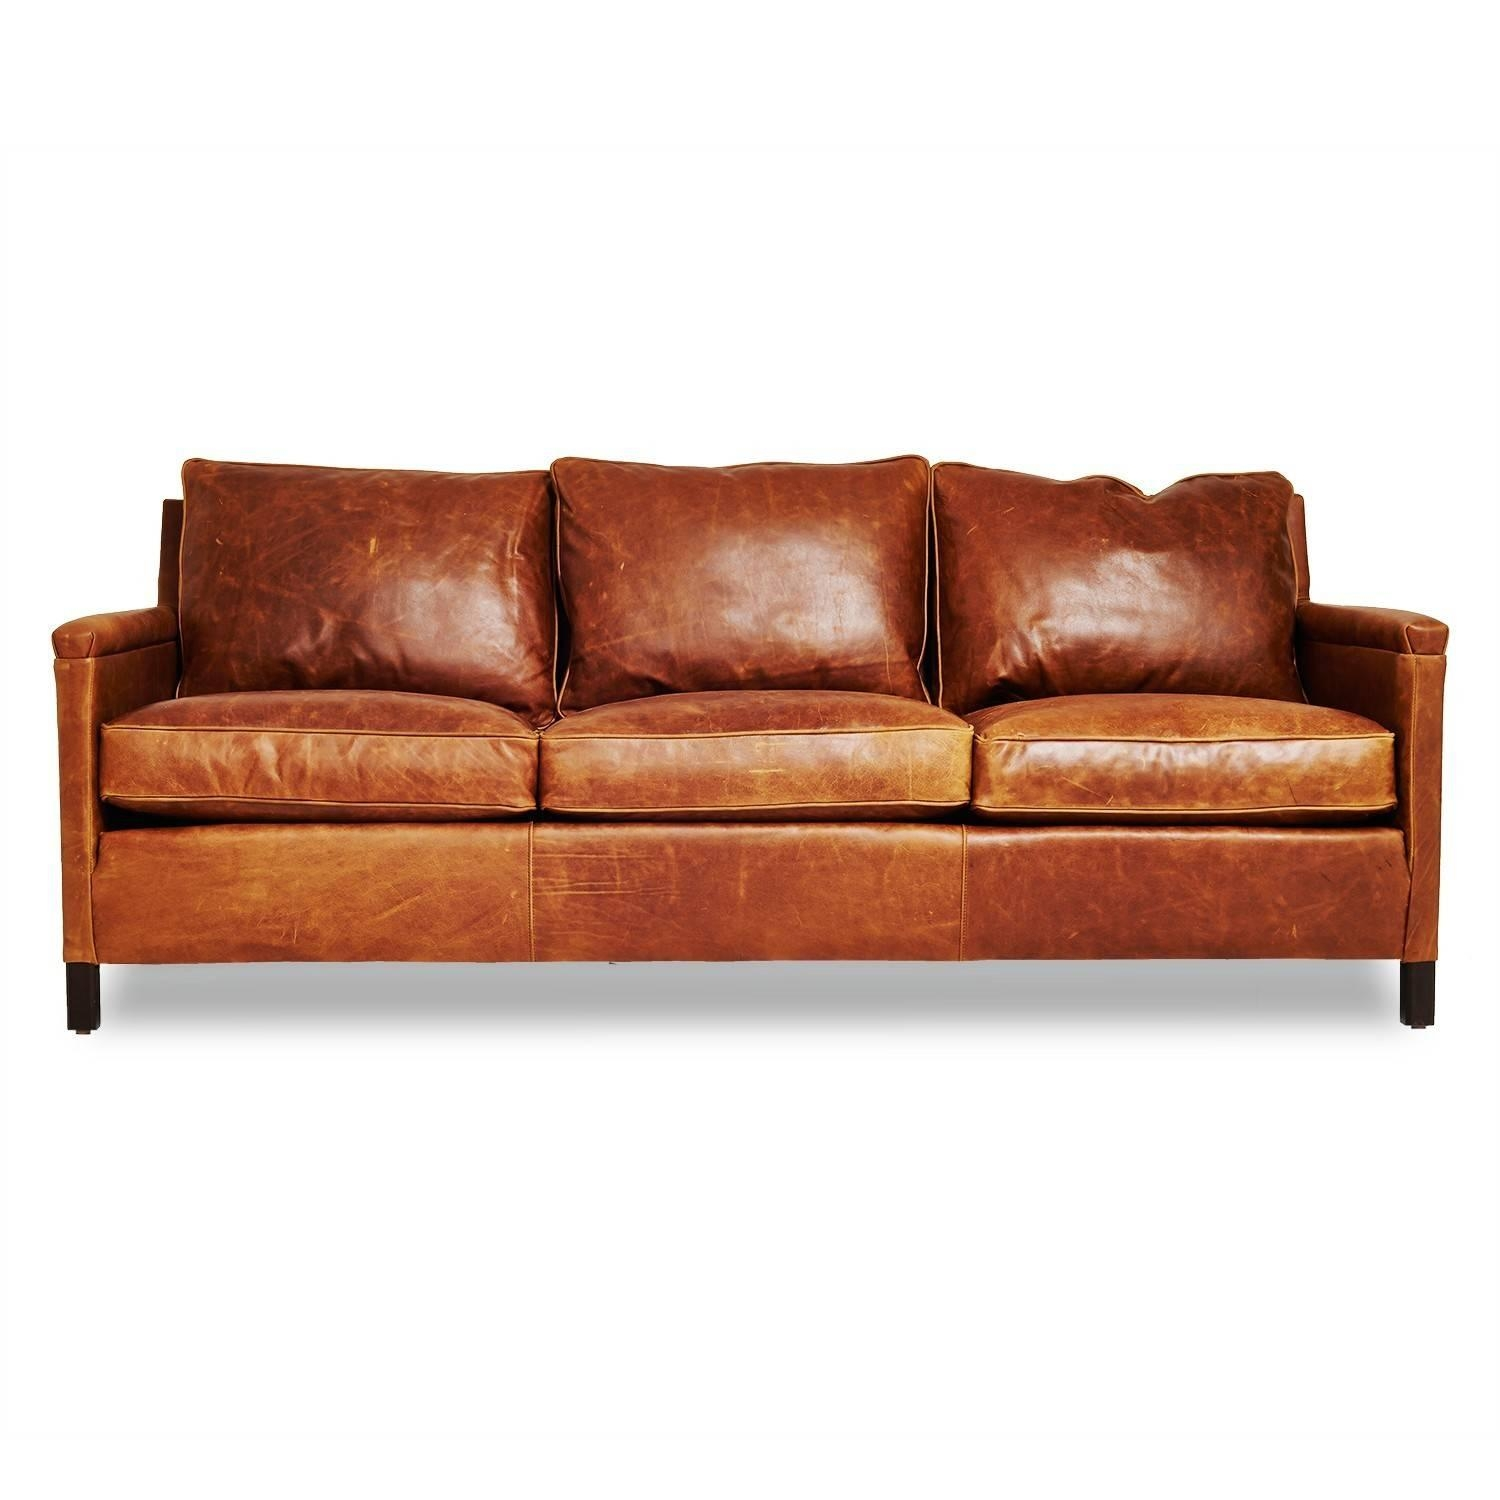 abc sofa bed diy chesterfield plans 20 top victorian leather sofas ideas